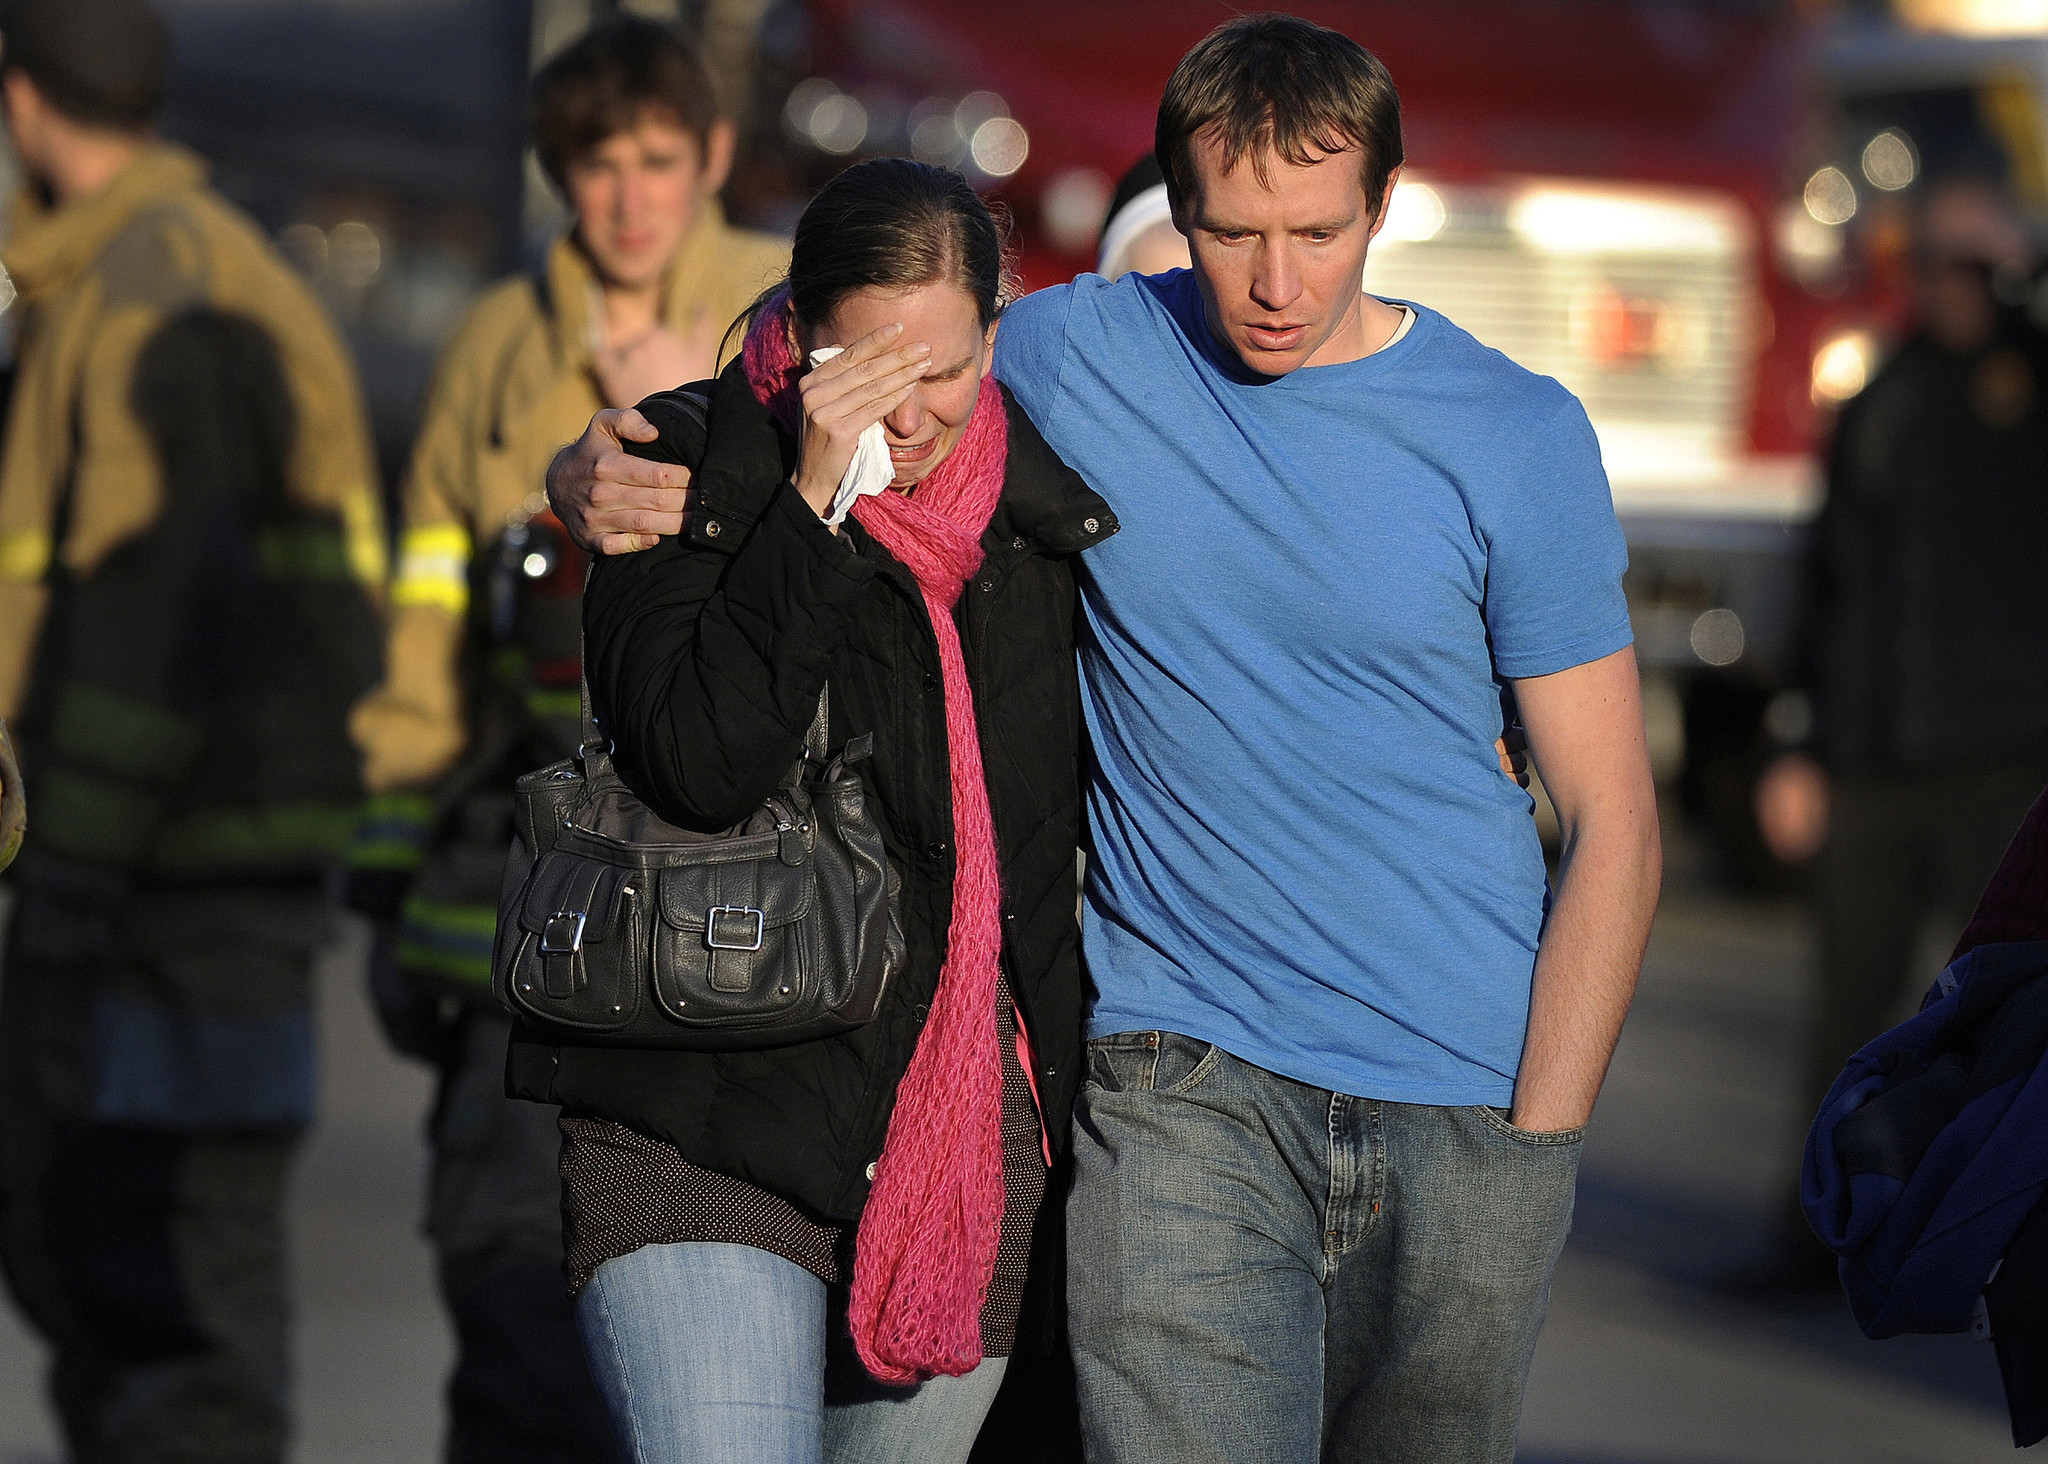 Alissa and Robbie Parker leave the Sandy Hook firehouse on Dec. 14, 2012 after receiving word that their six-year-old daughter, Emilie, was one of the 20 children killed in the Sandy Hook School shooting.